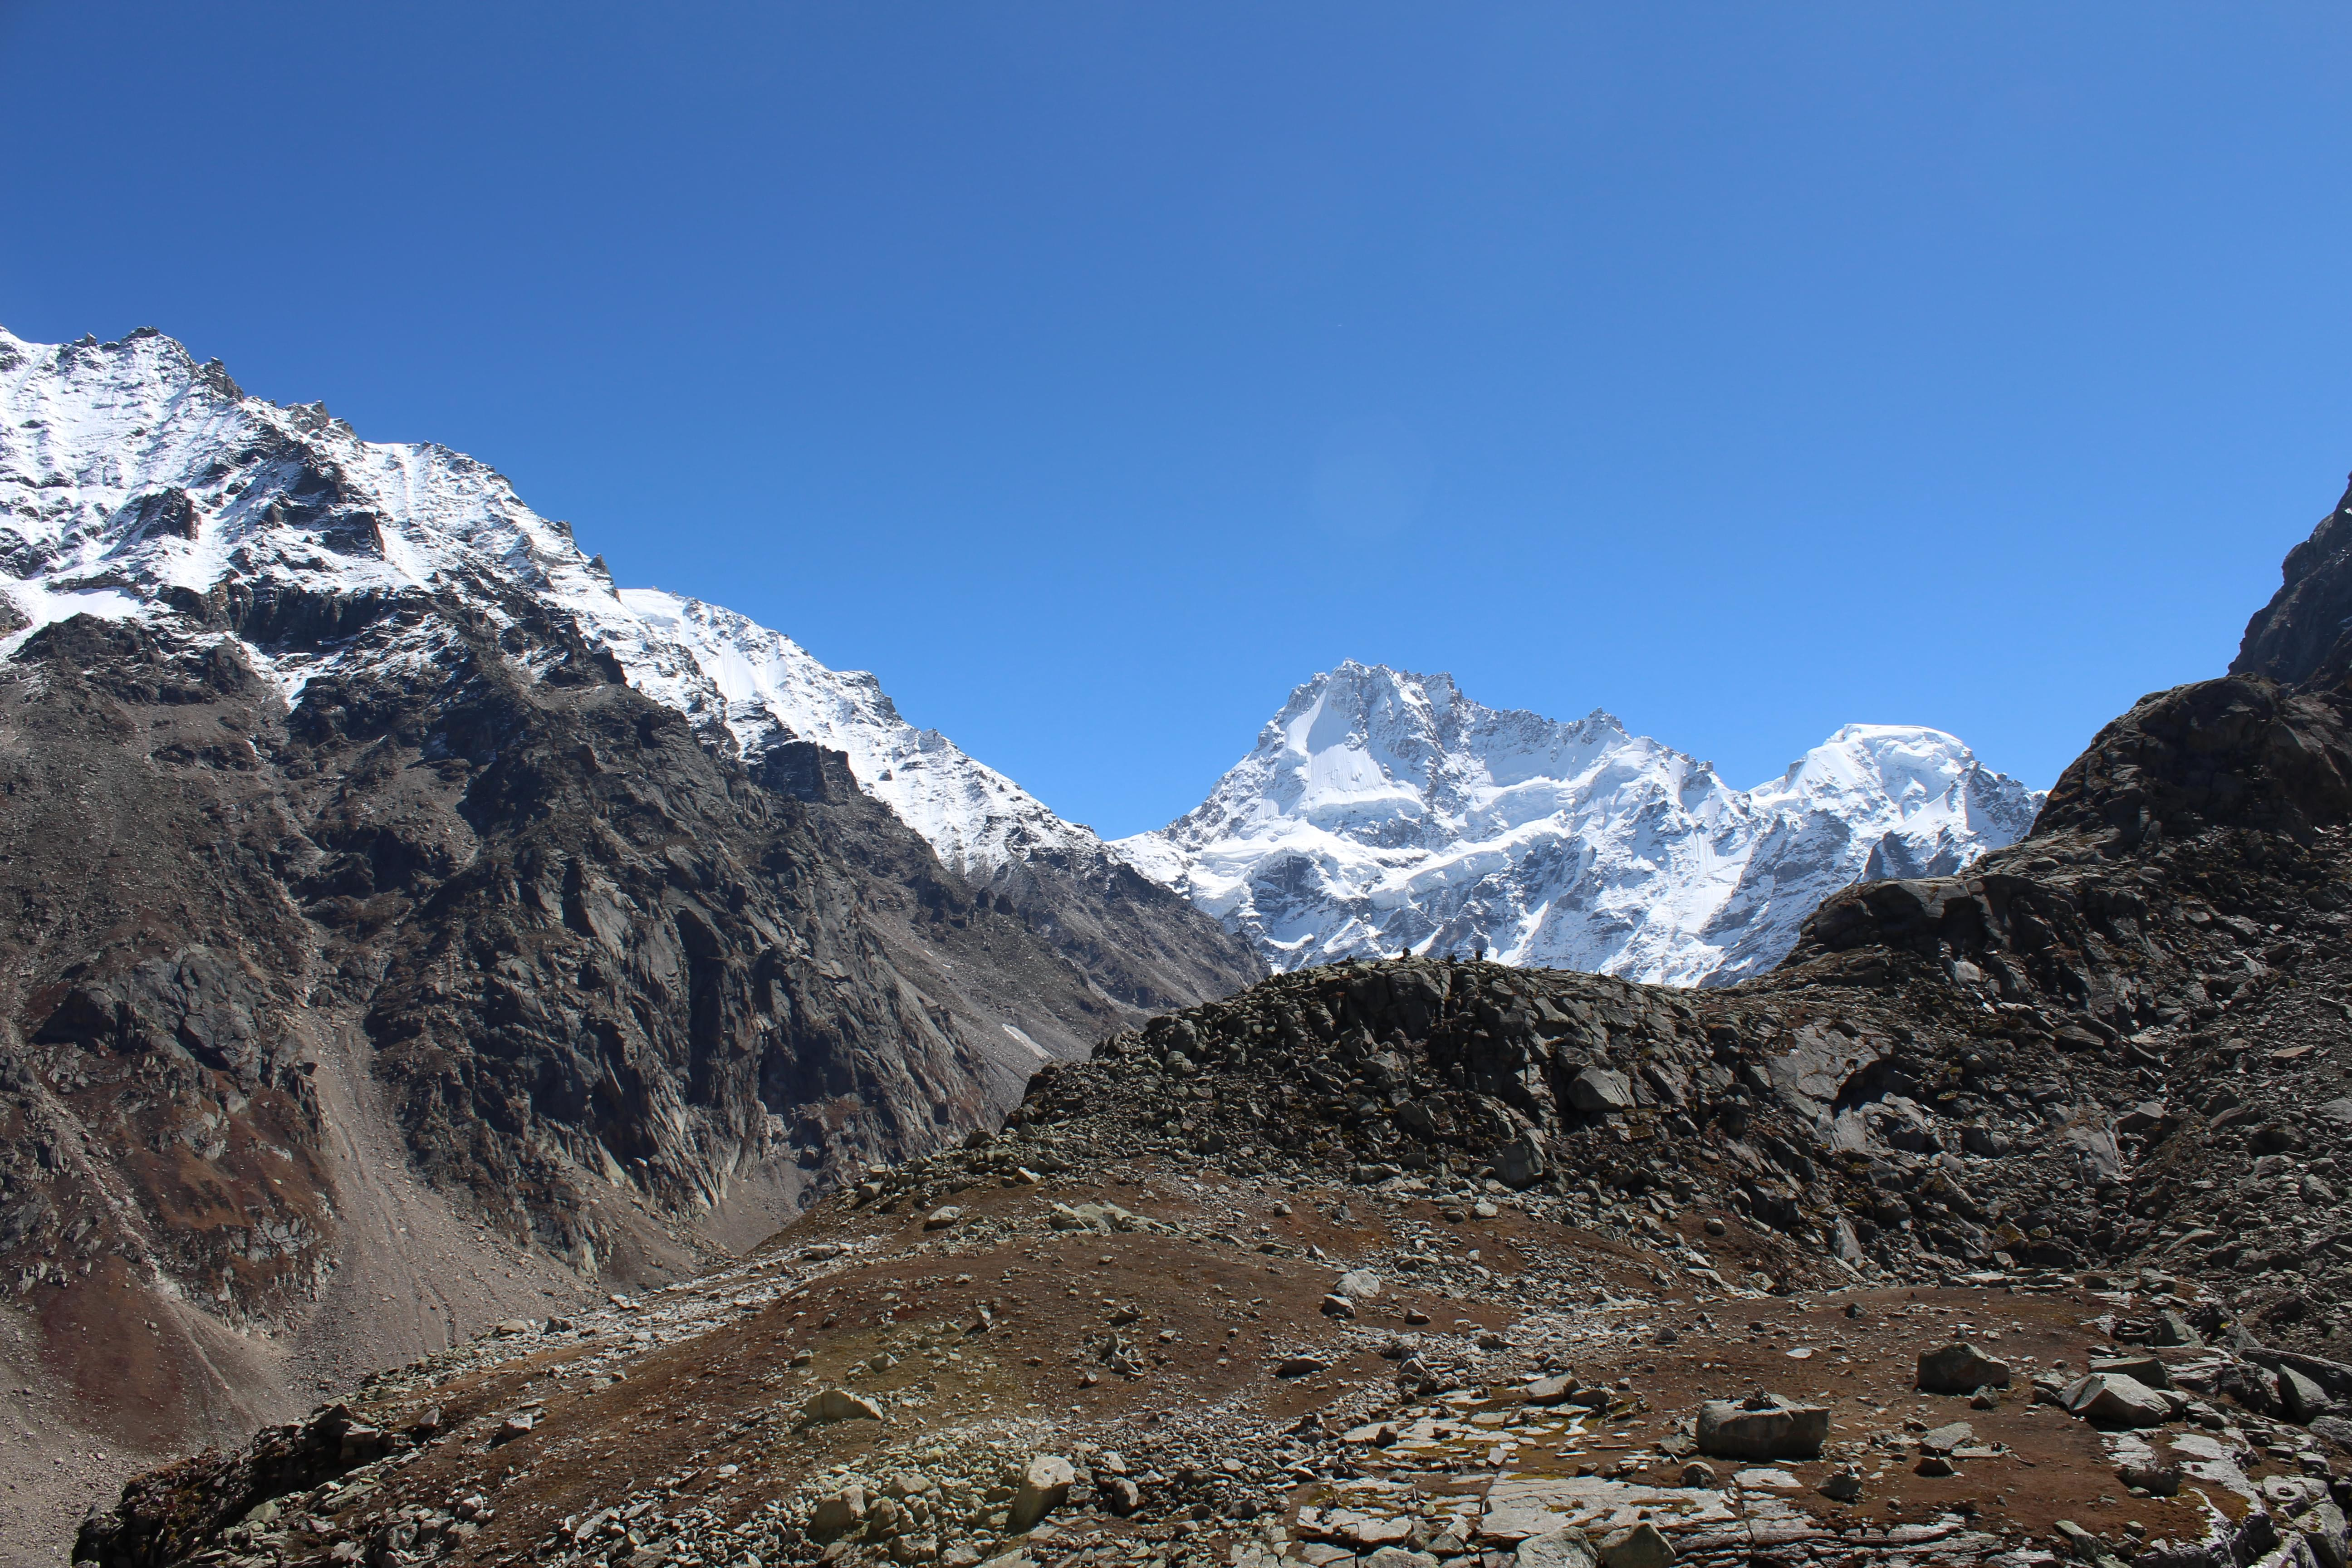 Mt.-Deo-Tibba-Expedition-JustWravel-1597385649-1.JPG